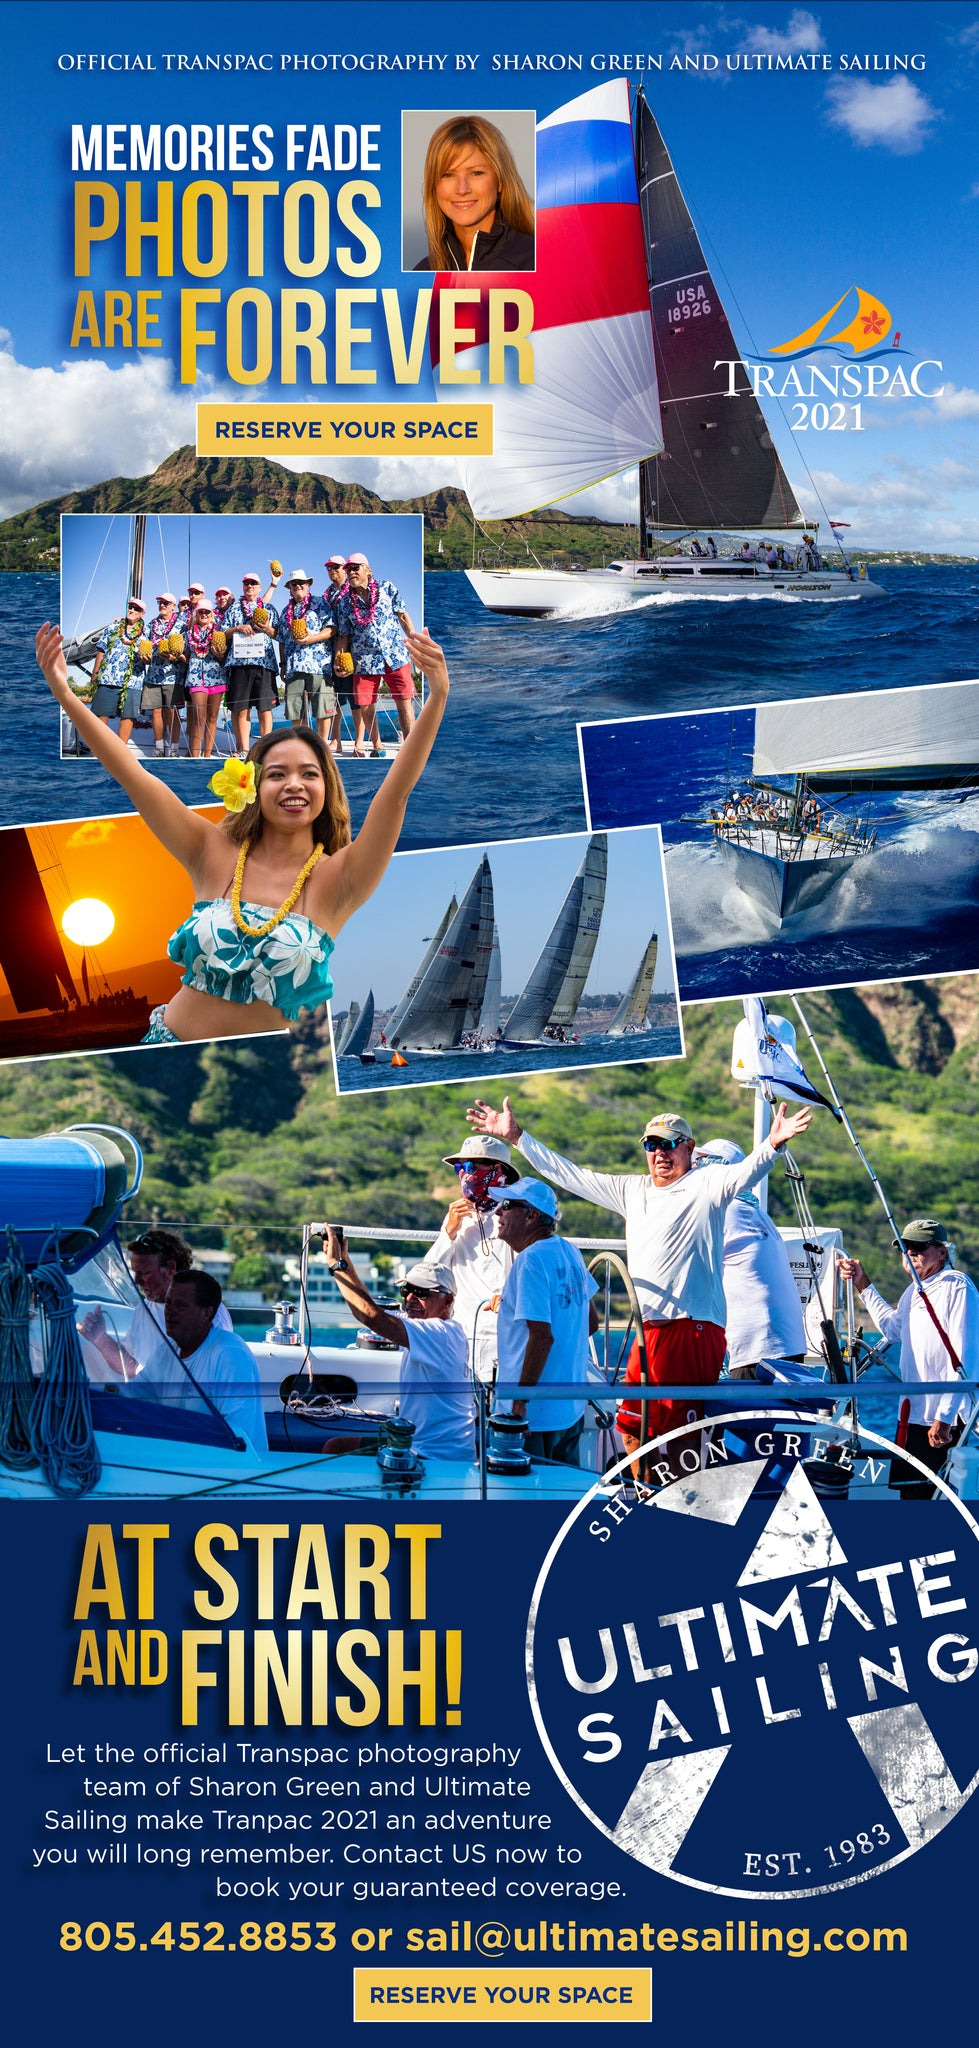 Transpac Photo coverage by Sharon Green and Ultimate Sailing